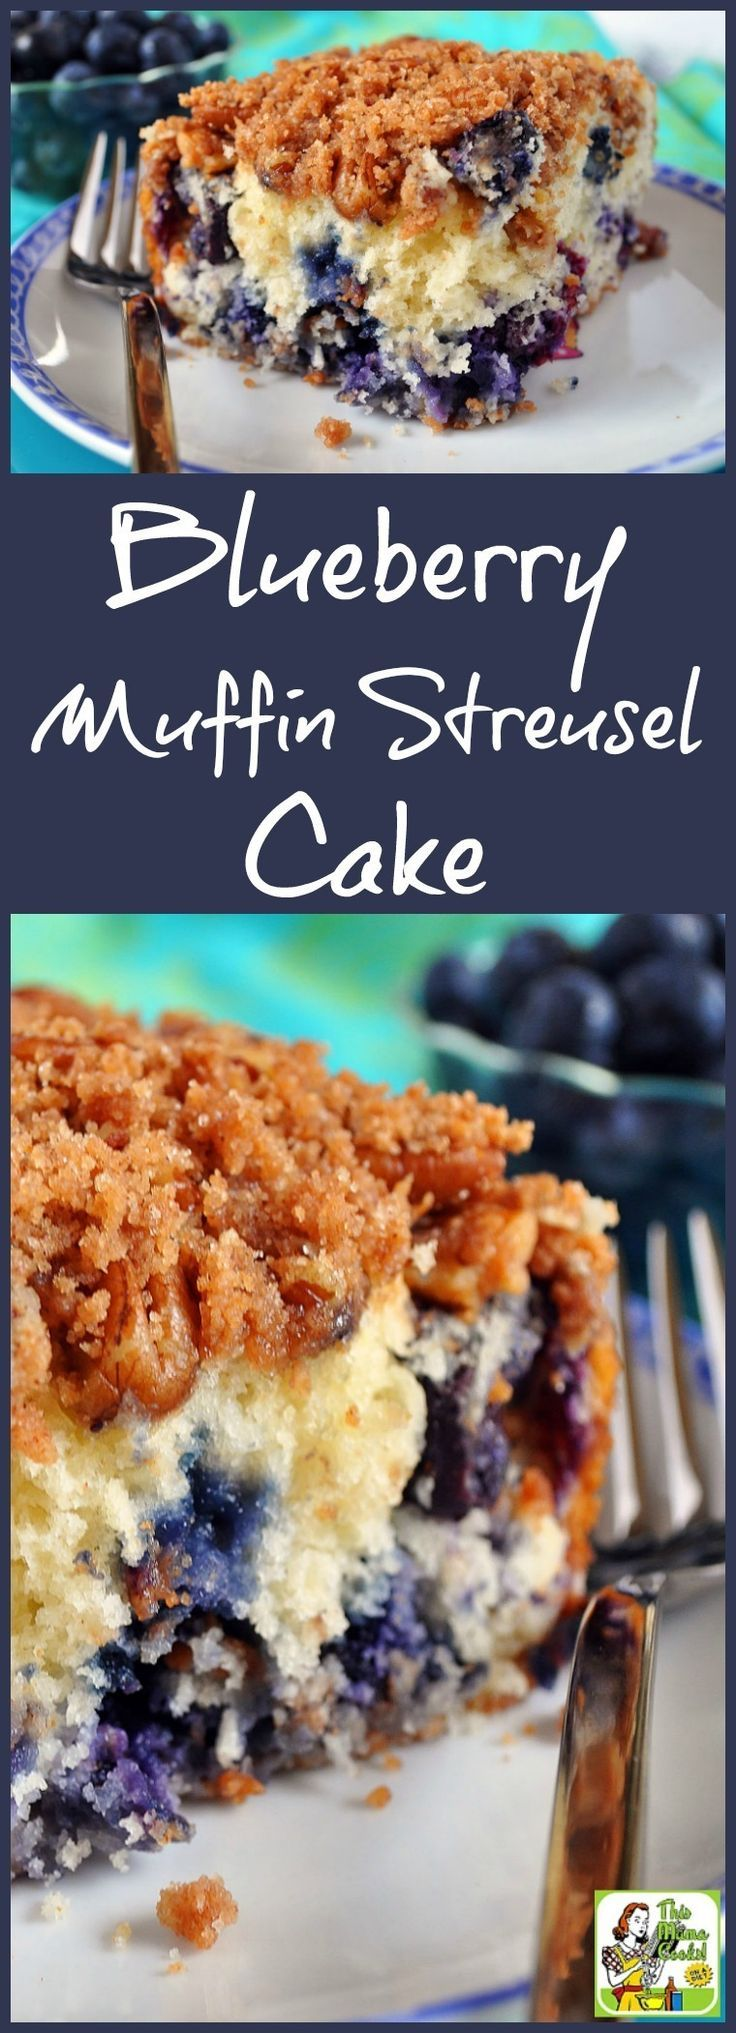 Make Blueberry Muffin Streusel Cake for brunch or a work breakfast meeting. This recipe is easy to make snack for playdates and teacher appreciation breakfasts, too! (Recipe comes with a gluten free and sugar free option.)